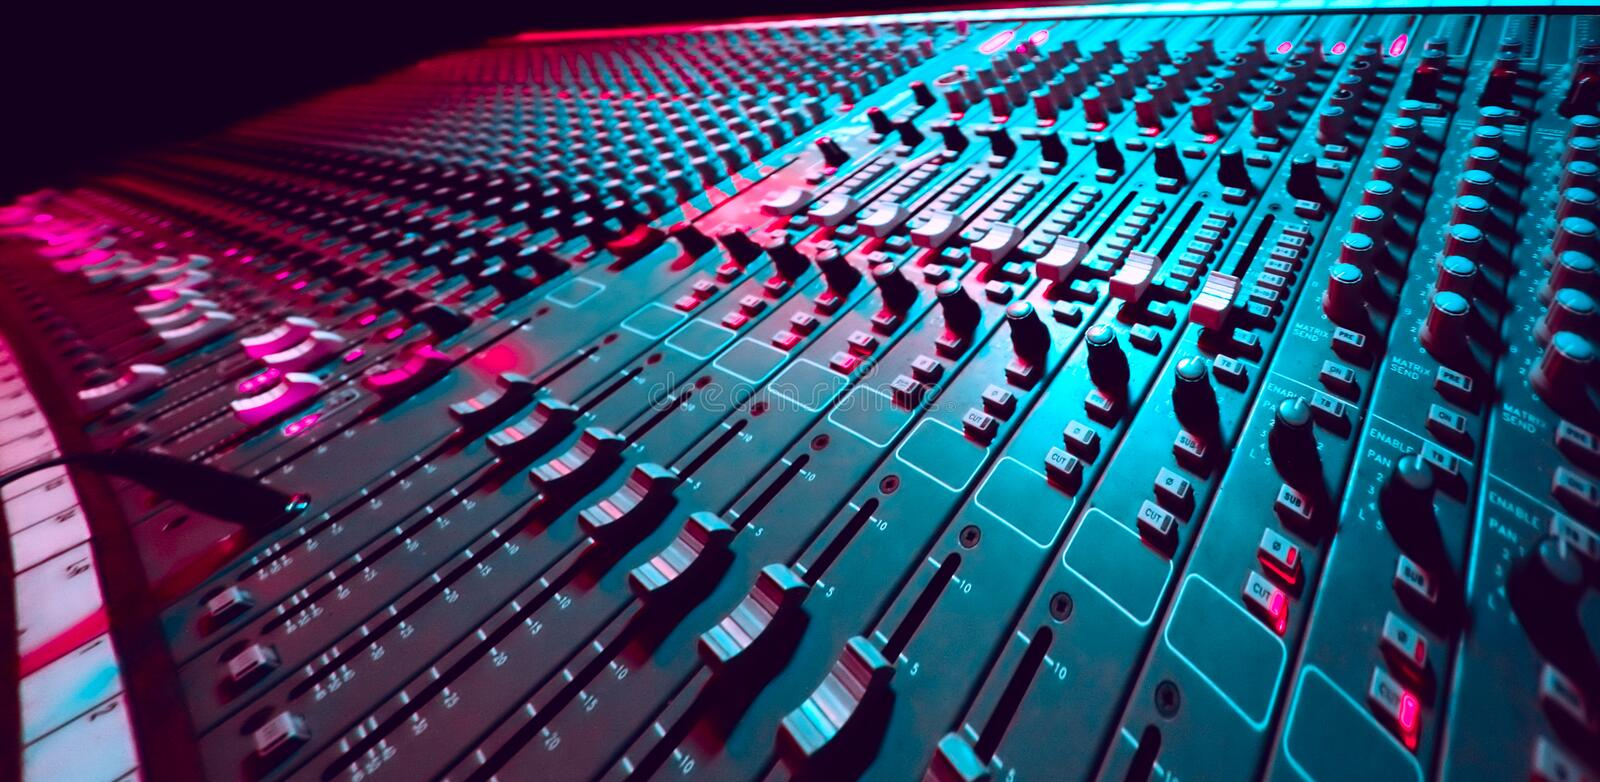 Download Music Mixer stock photo. Image of bass, discotheque, equalizer - 7996078